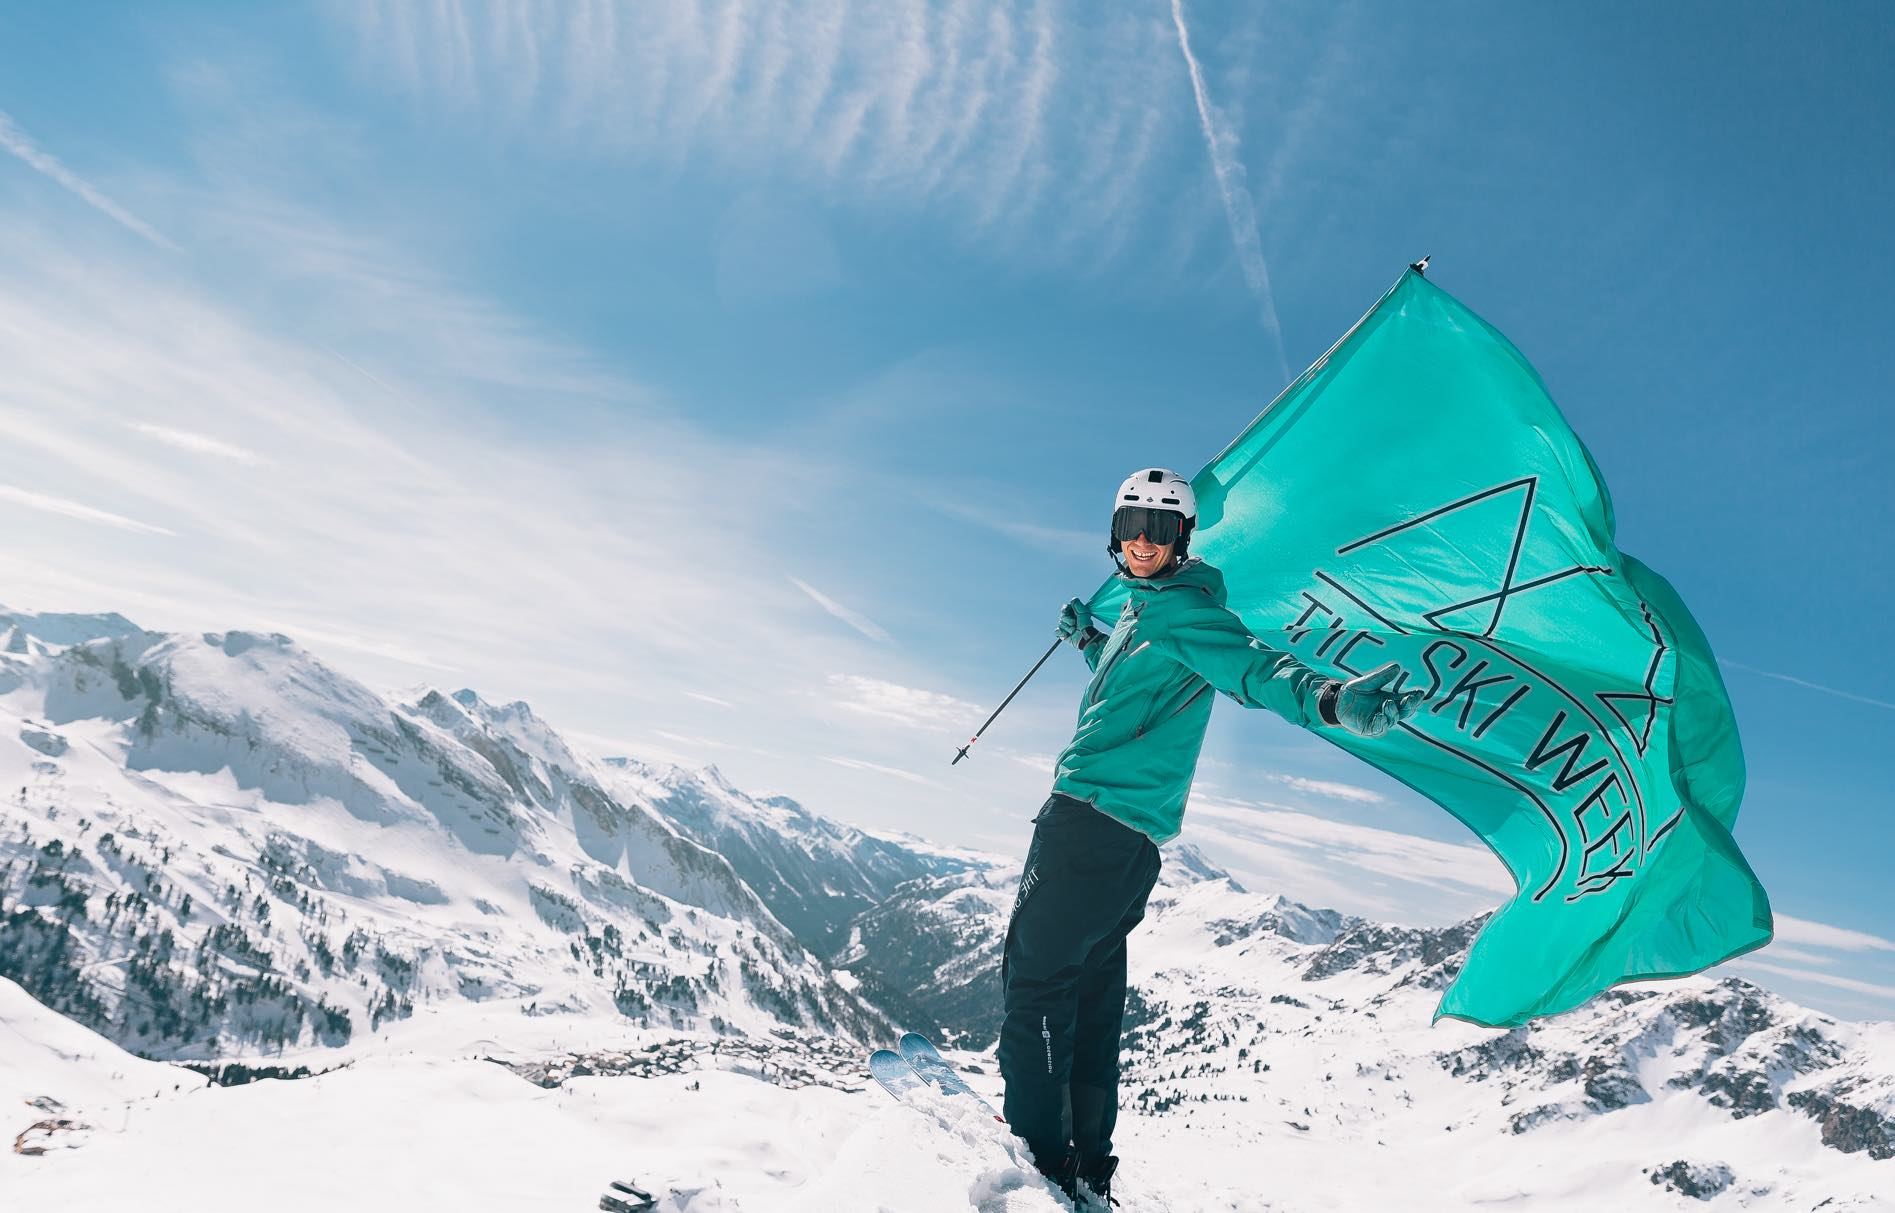 Five years on the road with The Ski Week